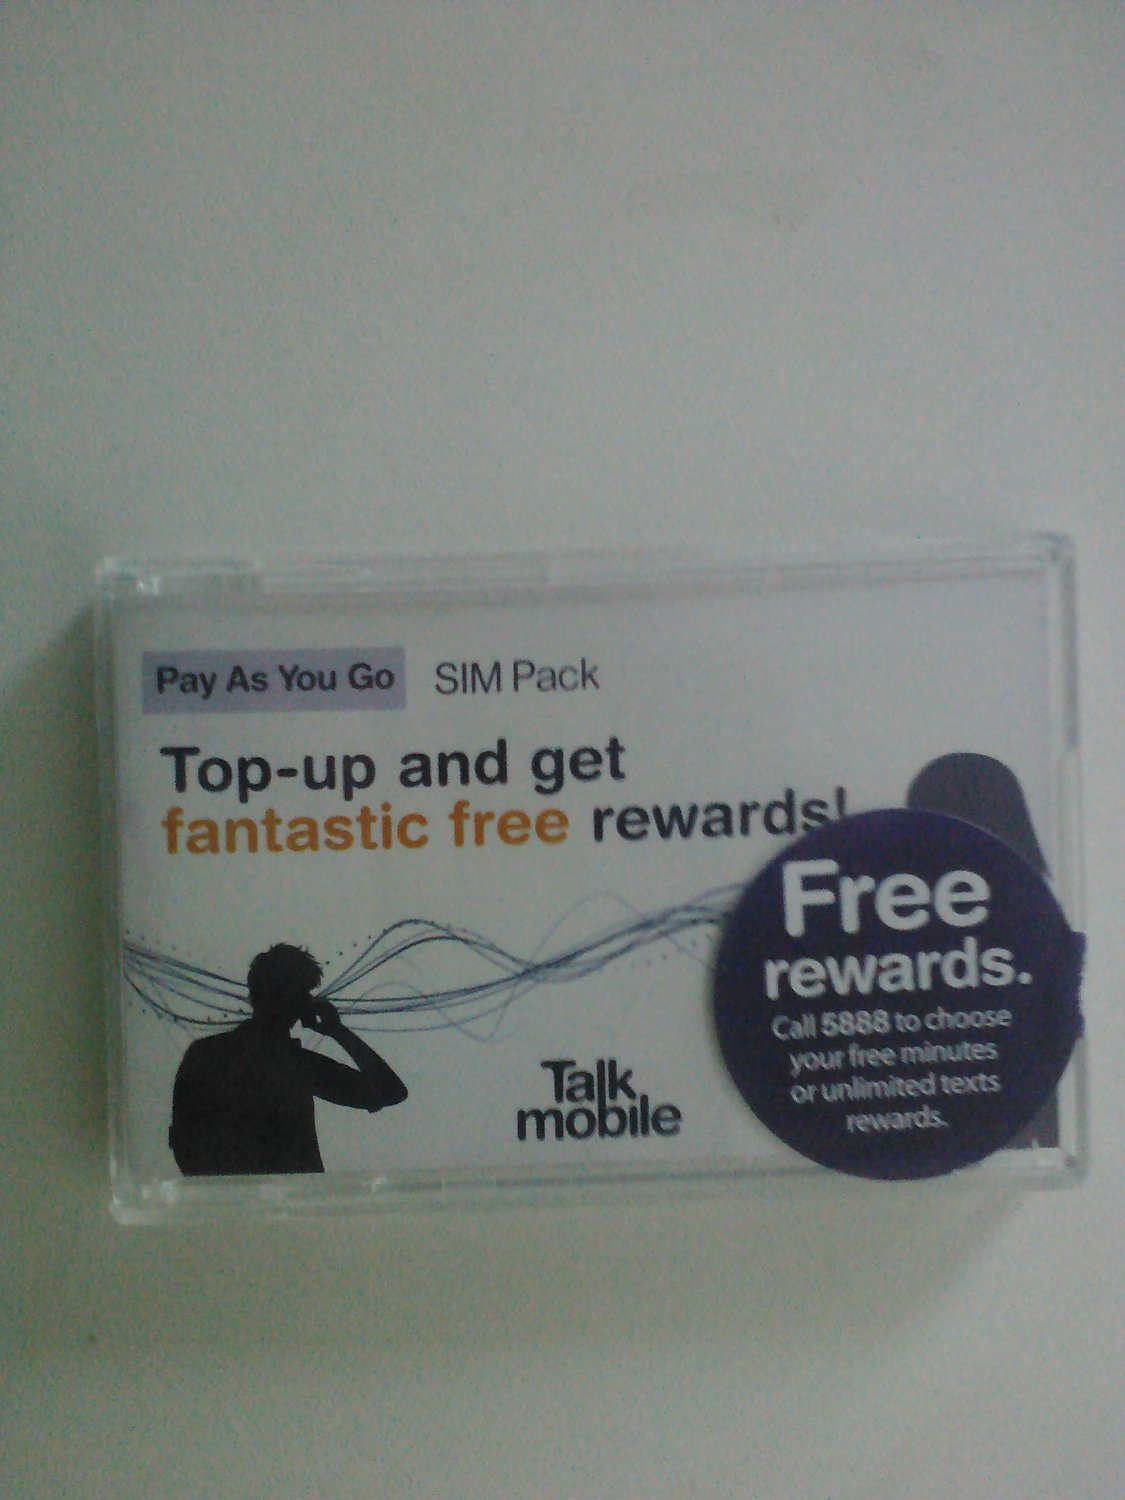 New Talkmobile world UK prepaid gsm sim card pack with sim card including £10 credit